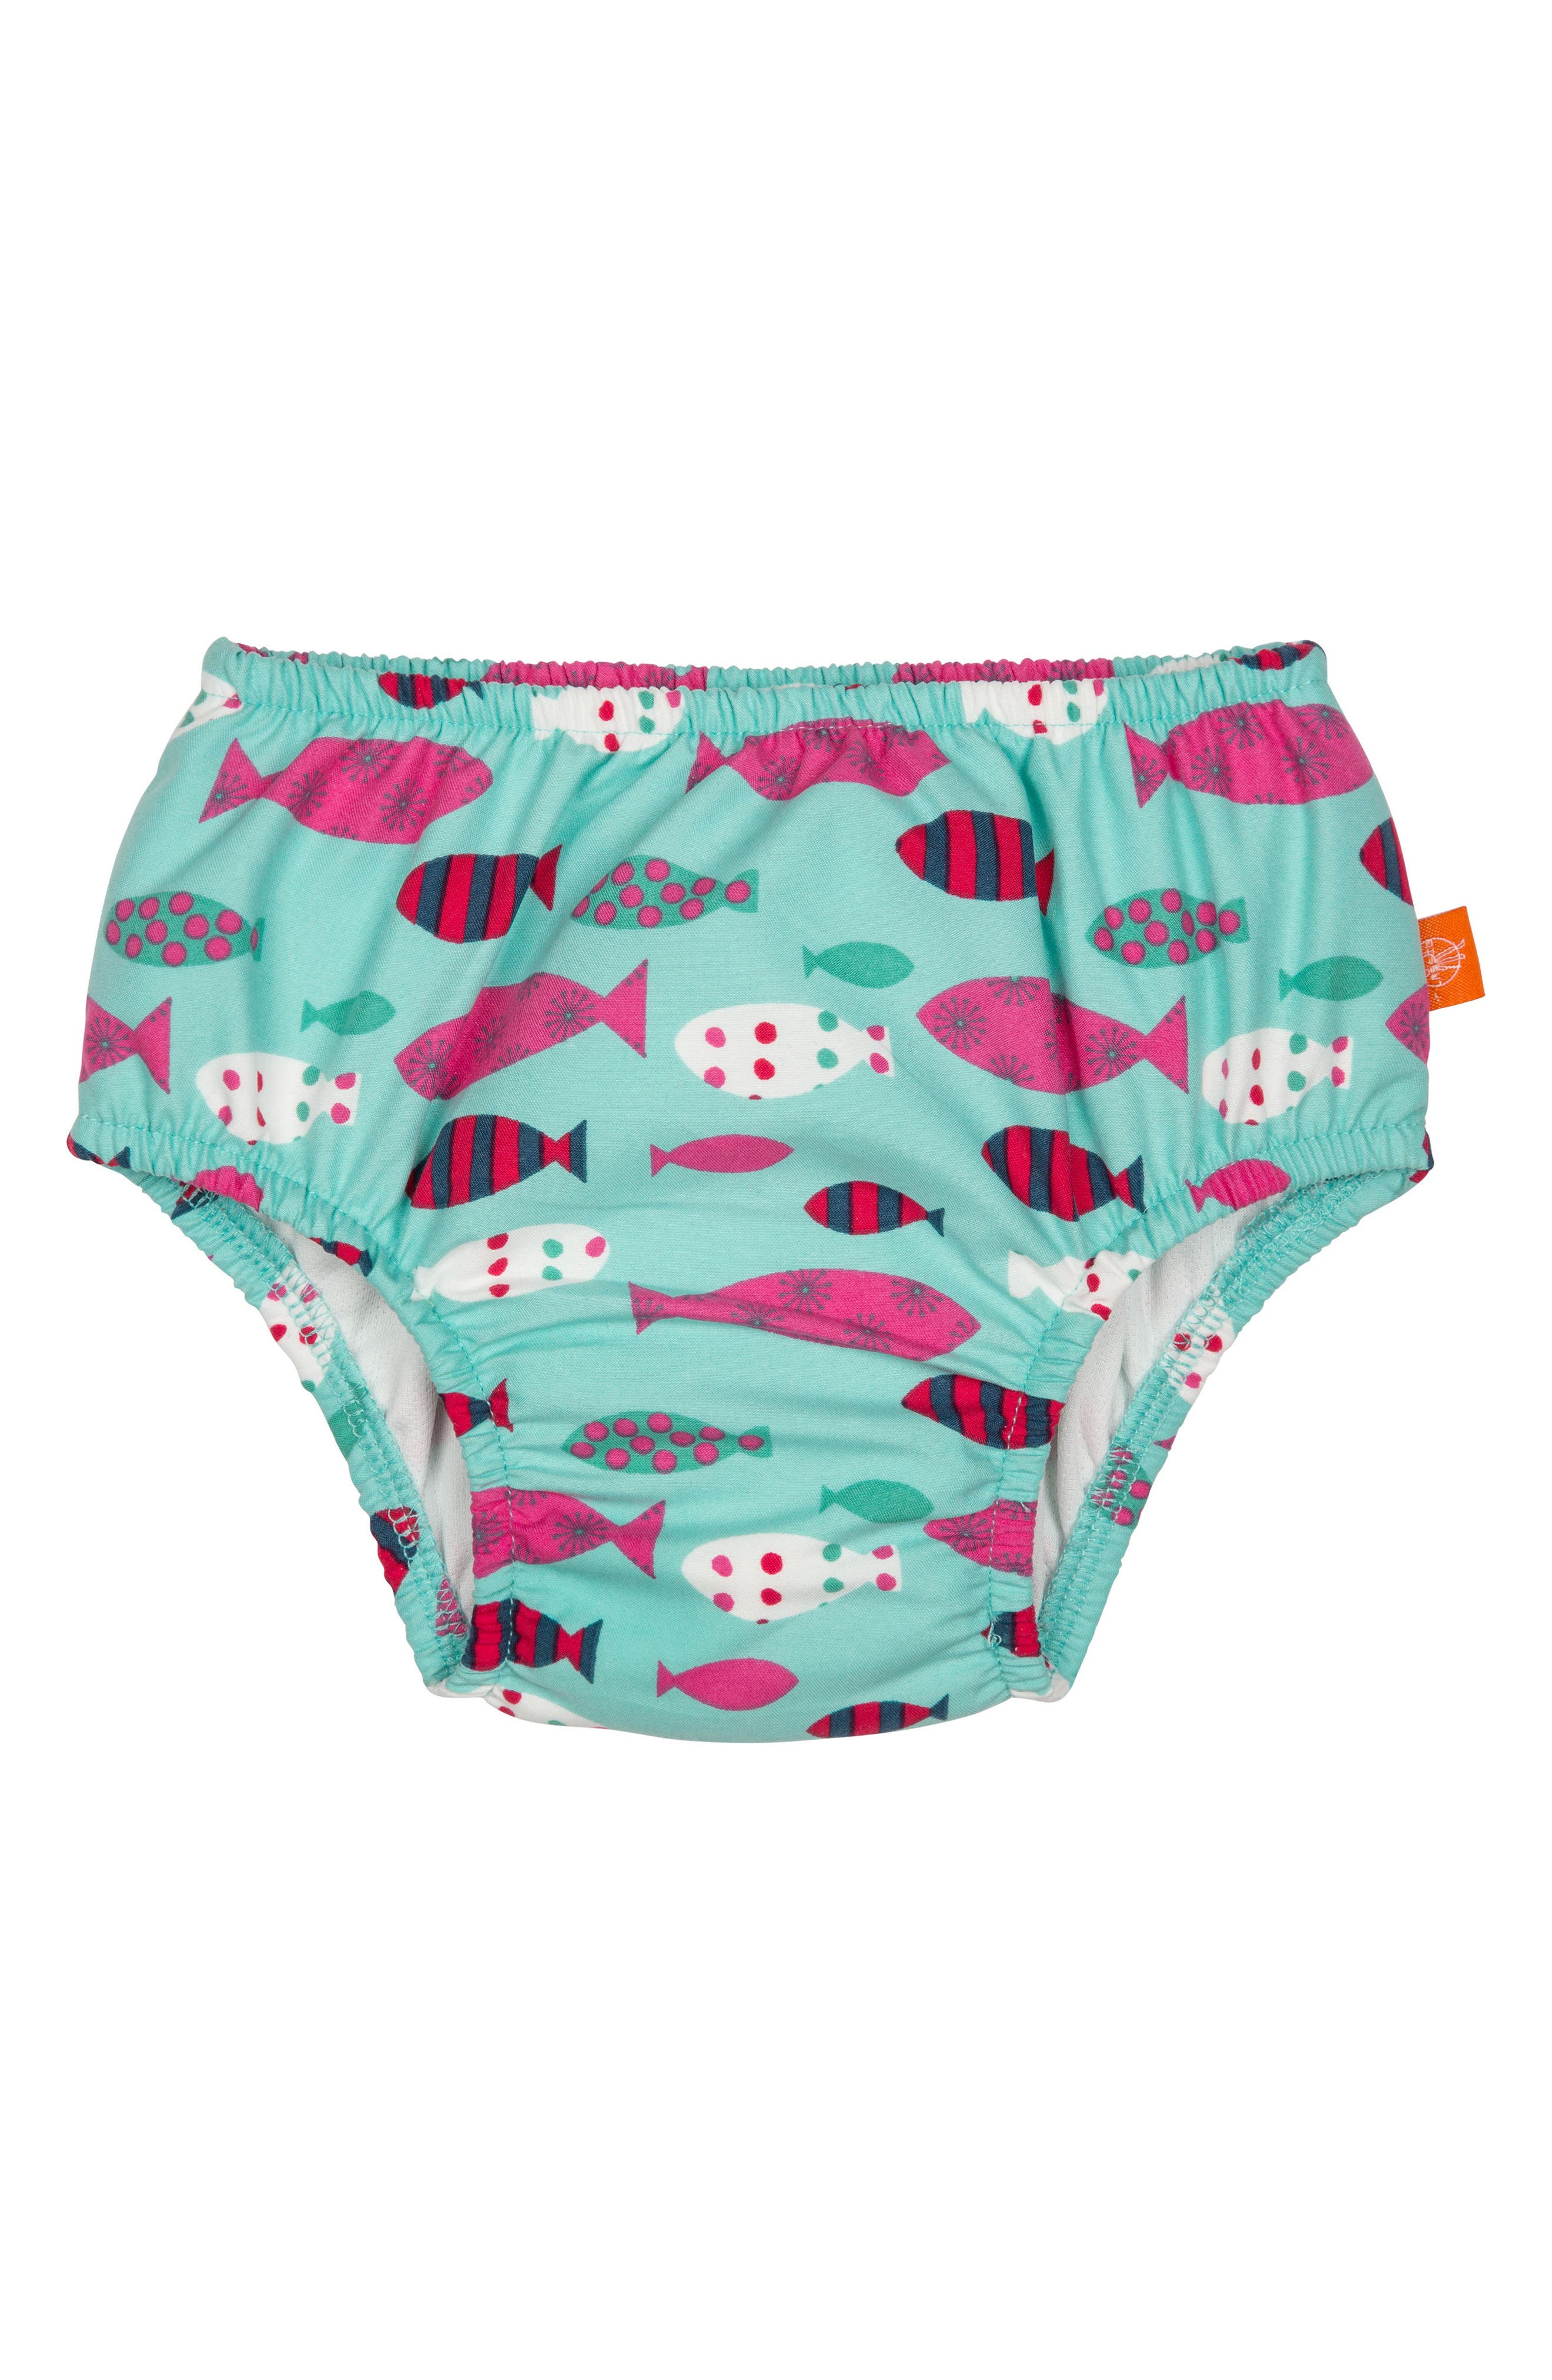 Lässig Mr. Fish Swim Diaper Cover (Baby Girls)